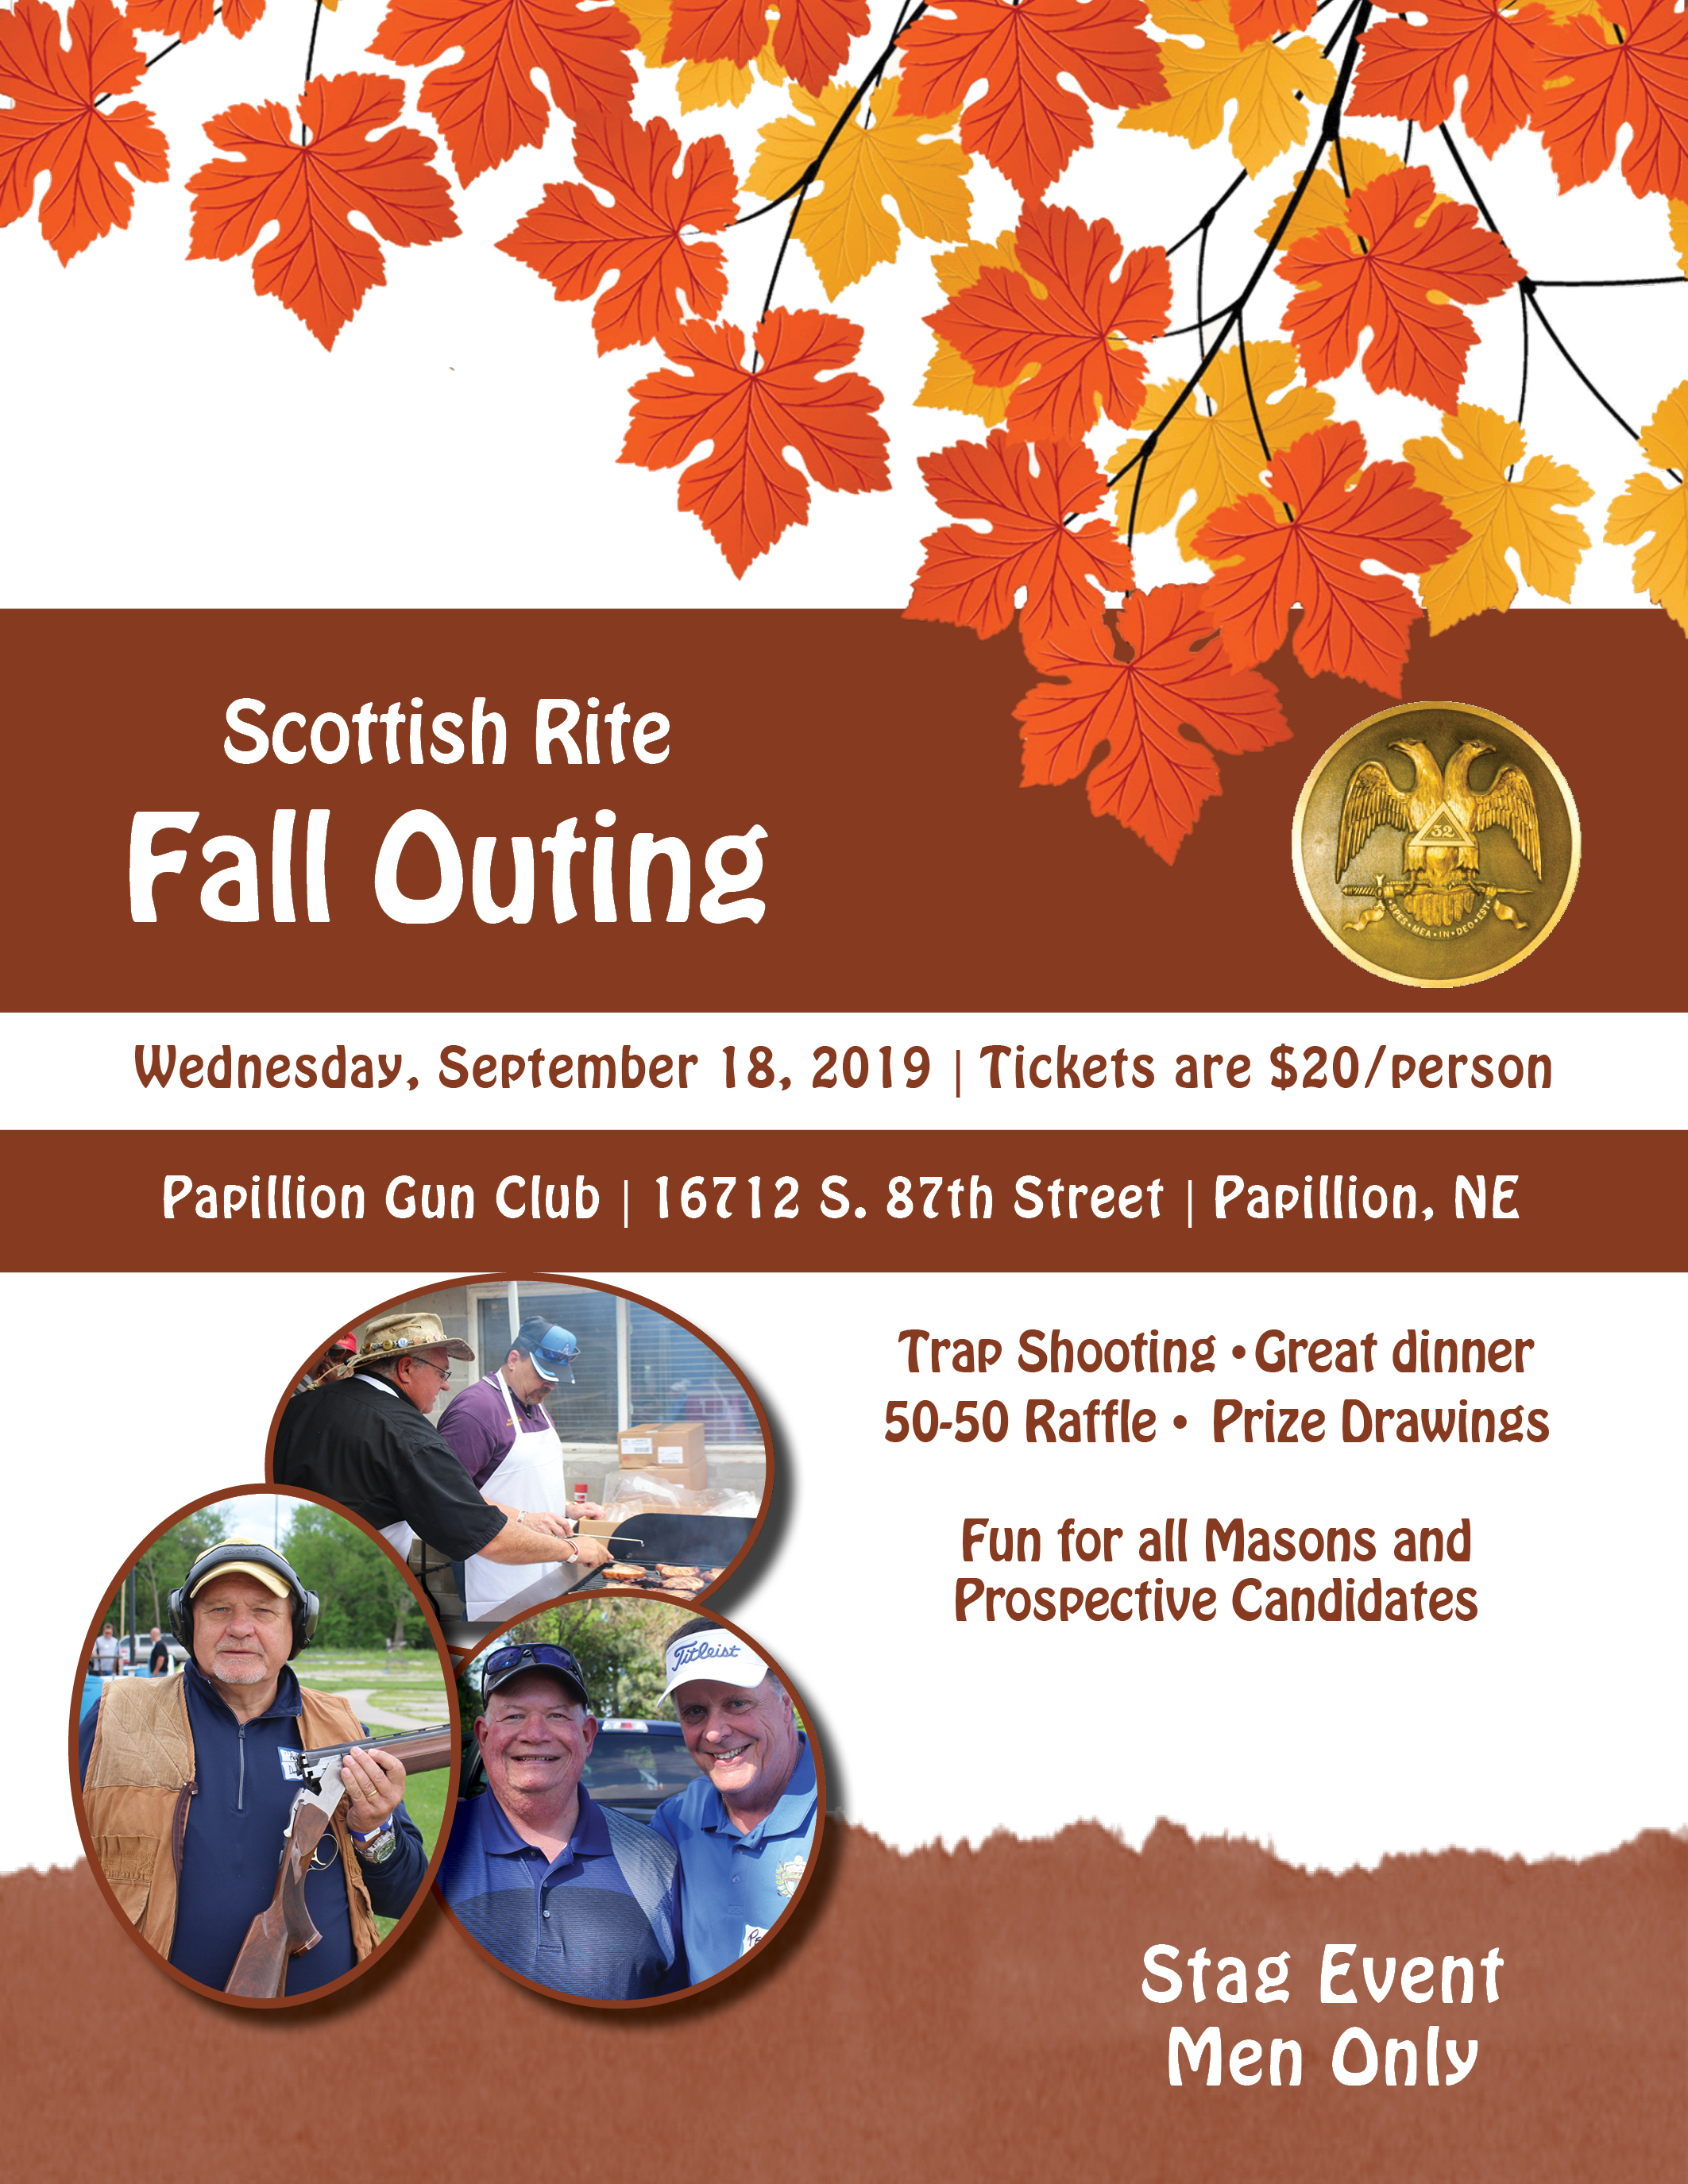 Click image above to download a PDF of the Fall Outing flier.